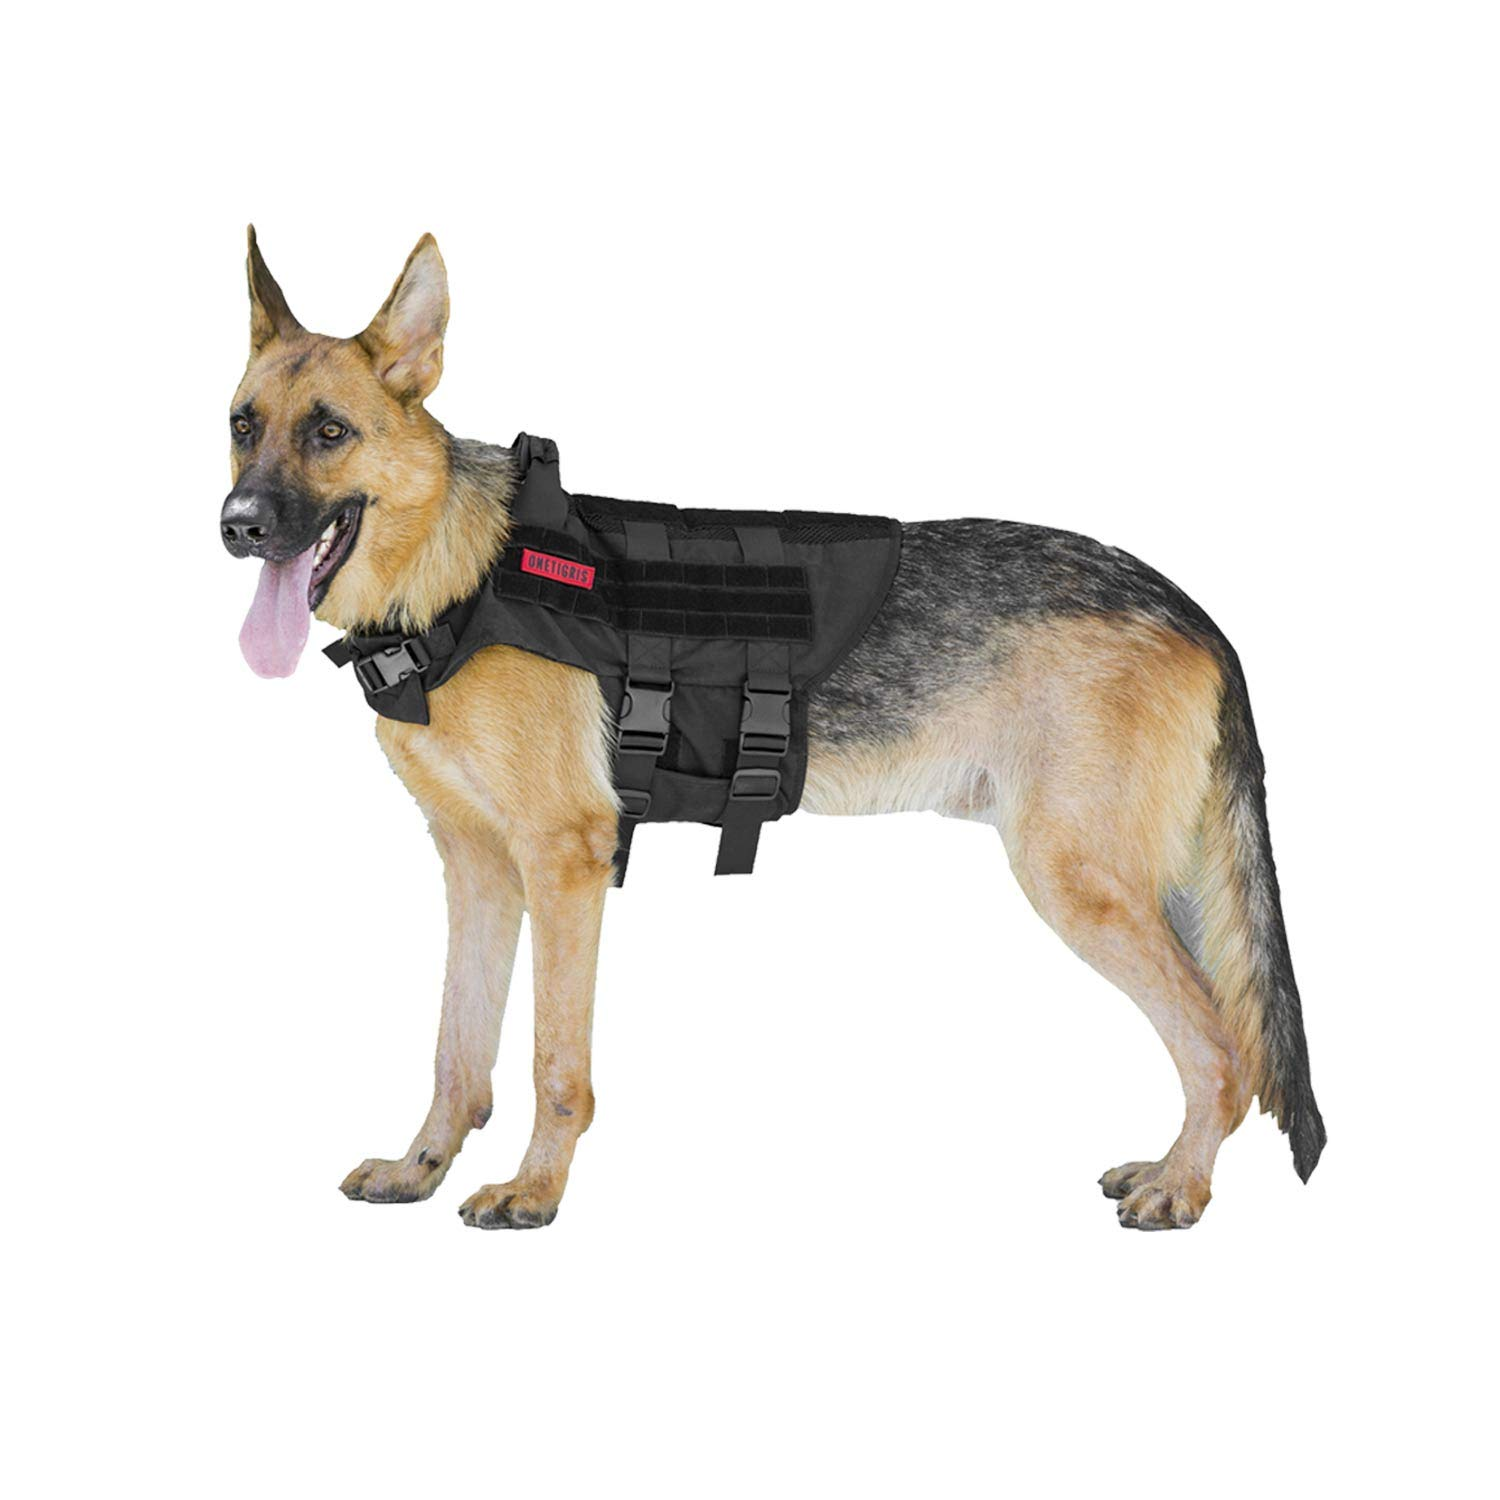 OneTigris K9 Tactical Dog Harness Patrol Dog Vest with Comfortable Adjustable Neck Protection Straps & Durable Handle (Black, Large) by OneTigris